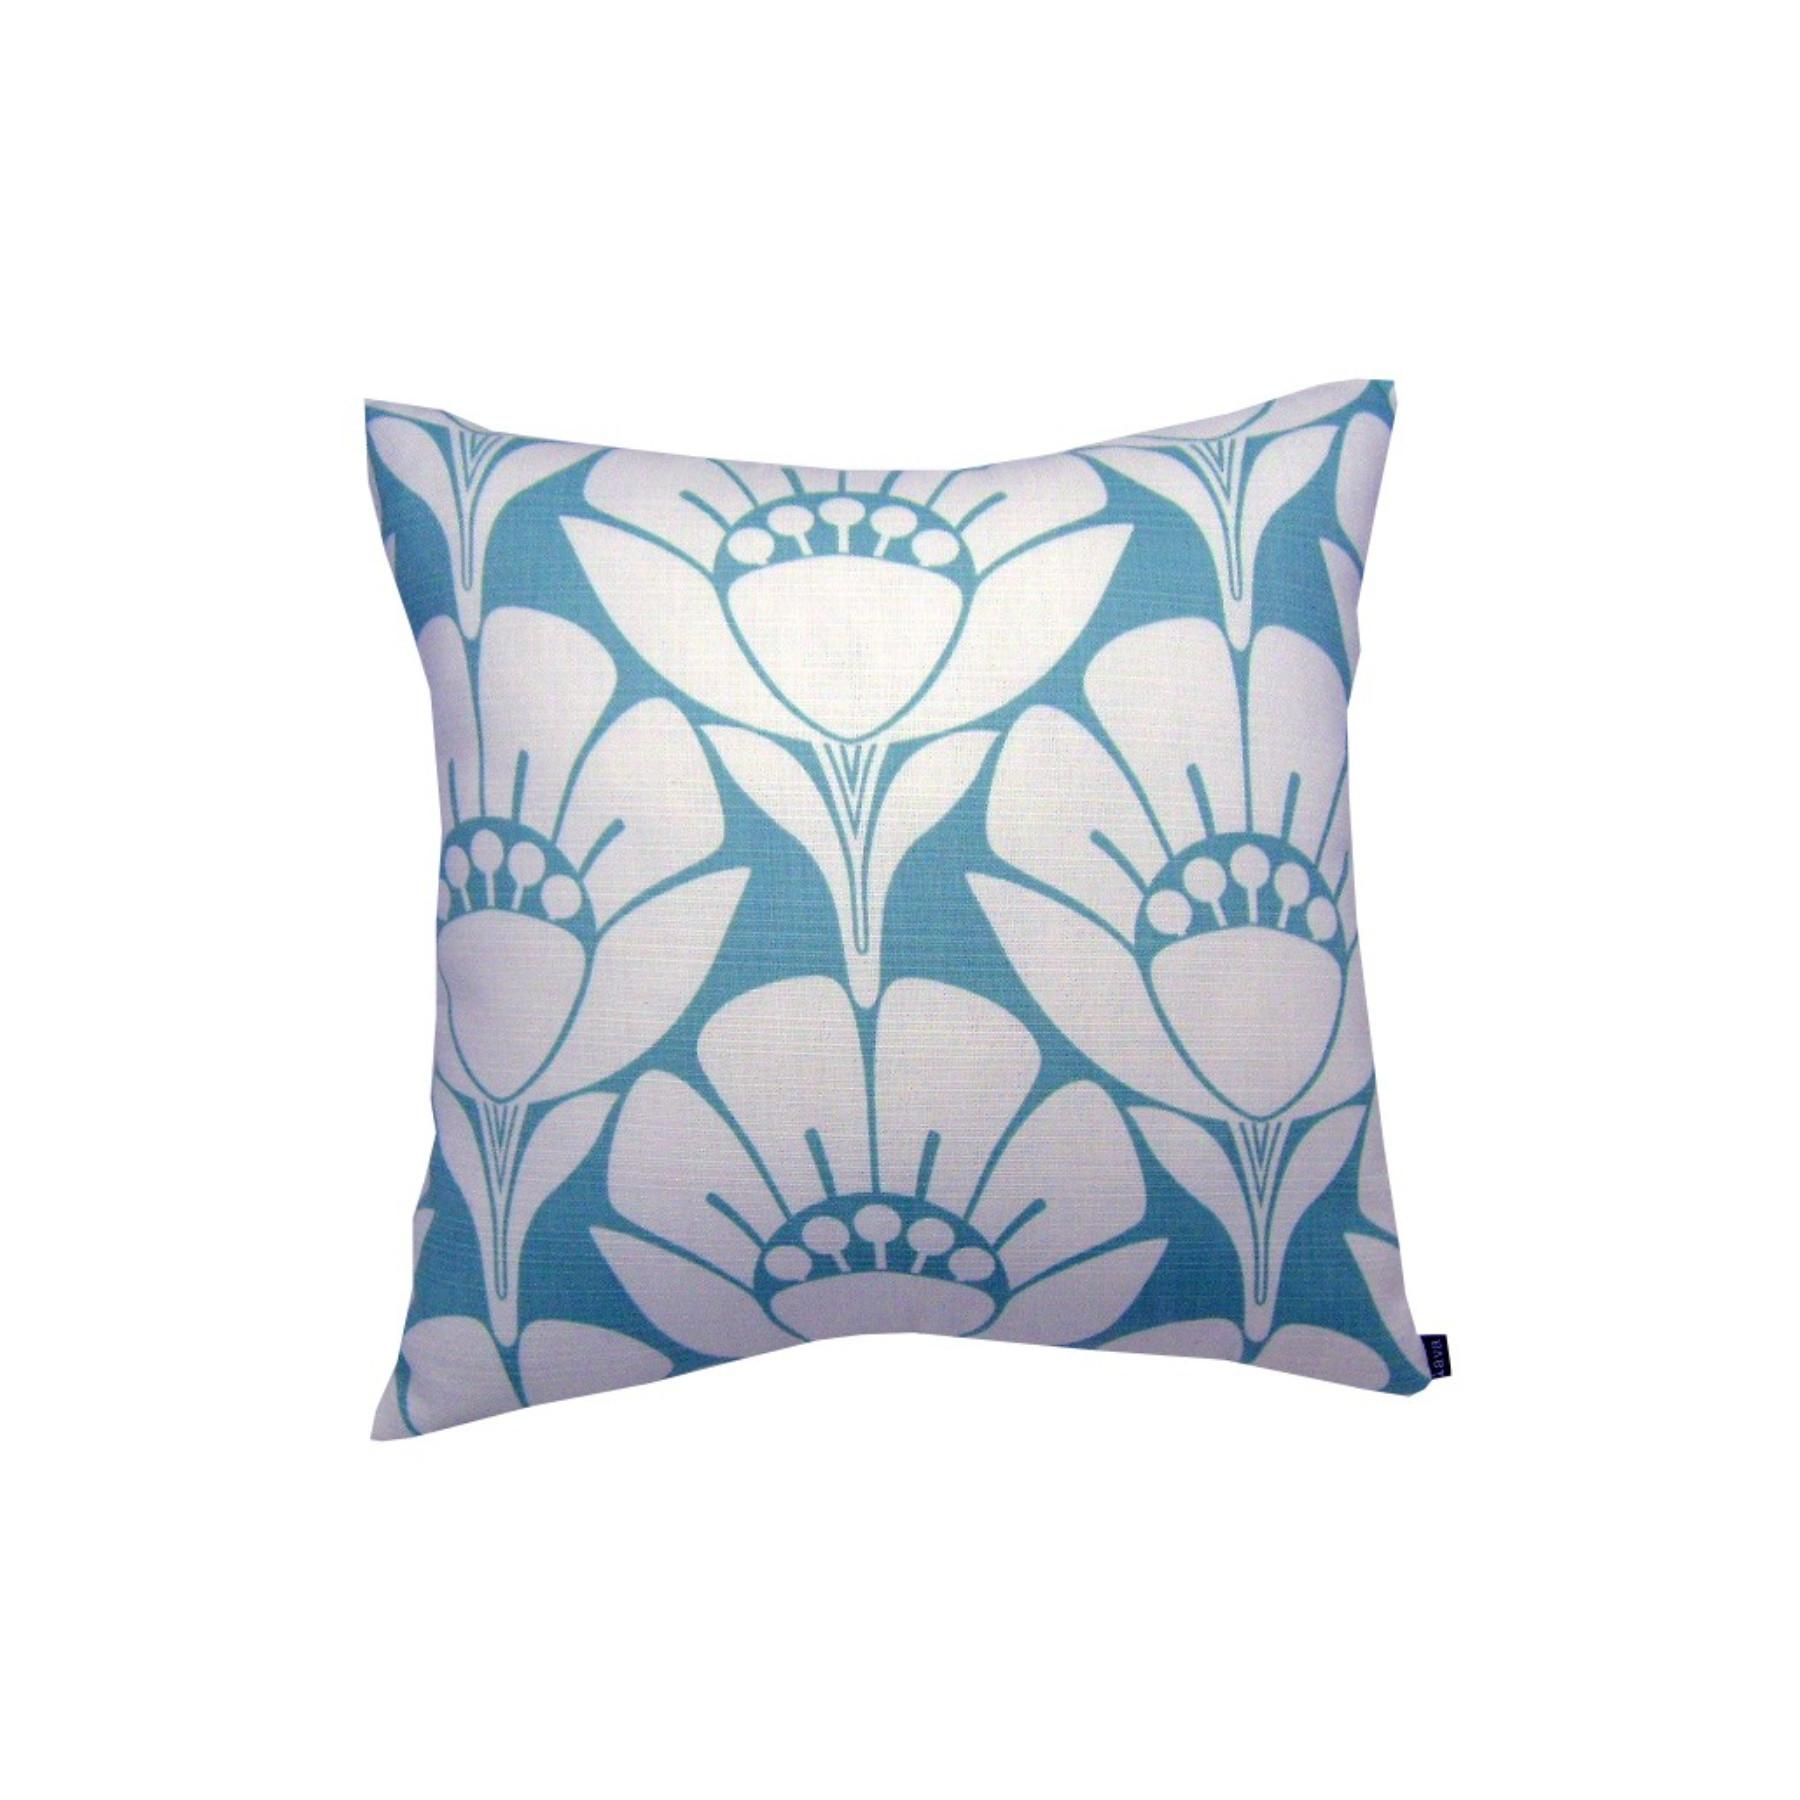 Spring Throw Pillow Pricefalls